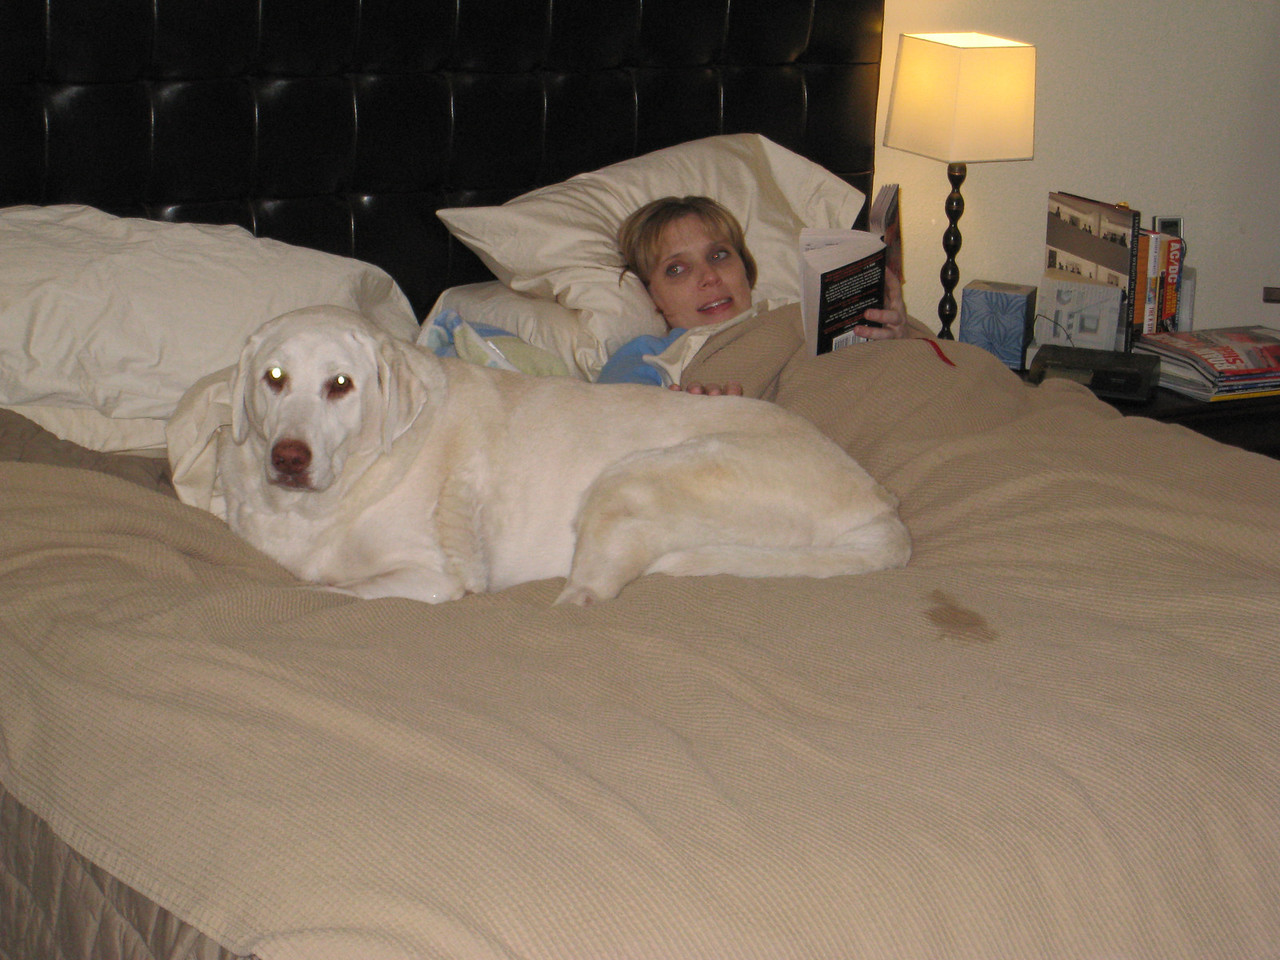 Murphy and Deena in bed - January 9, 2010